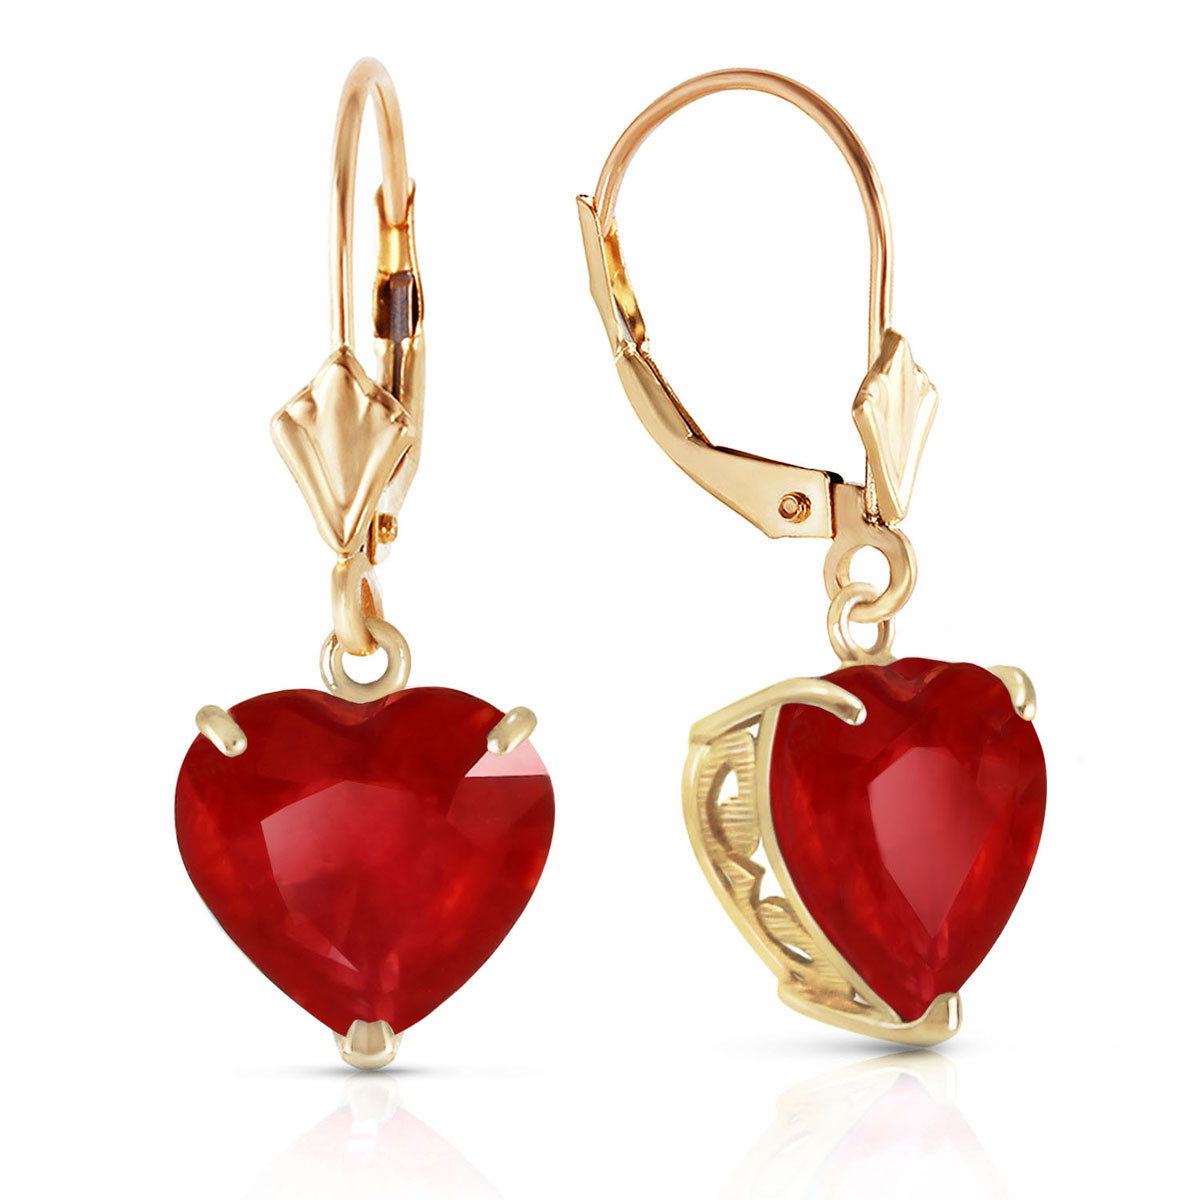 Ruby Large Heart Earrings 8.6 ctw in 9ct Gold